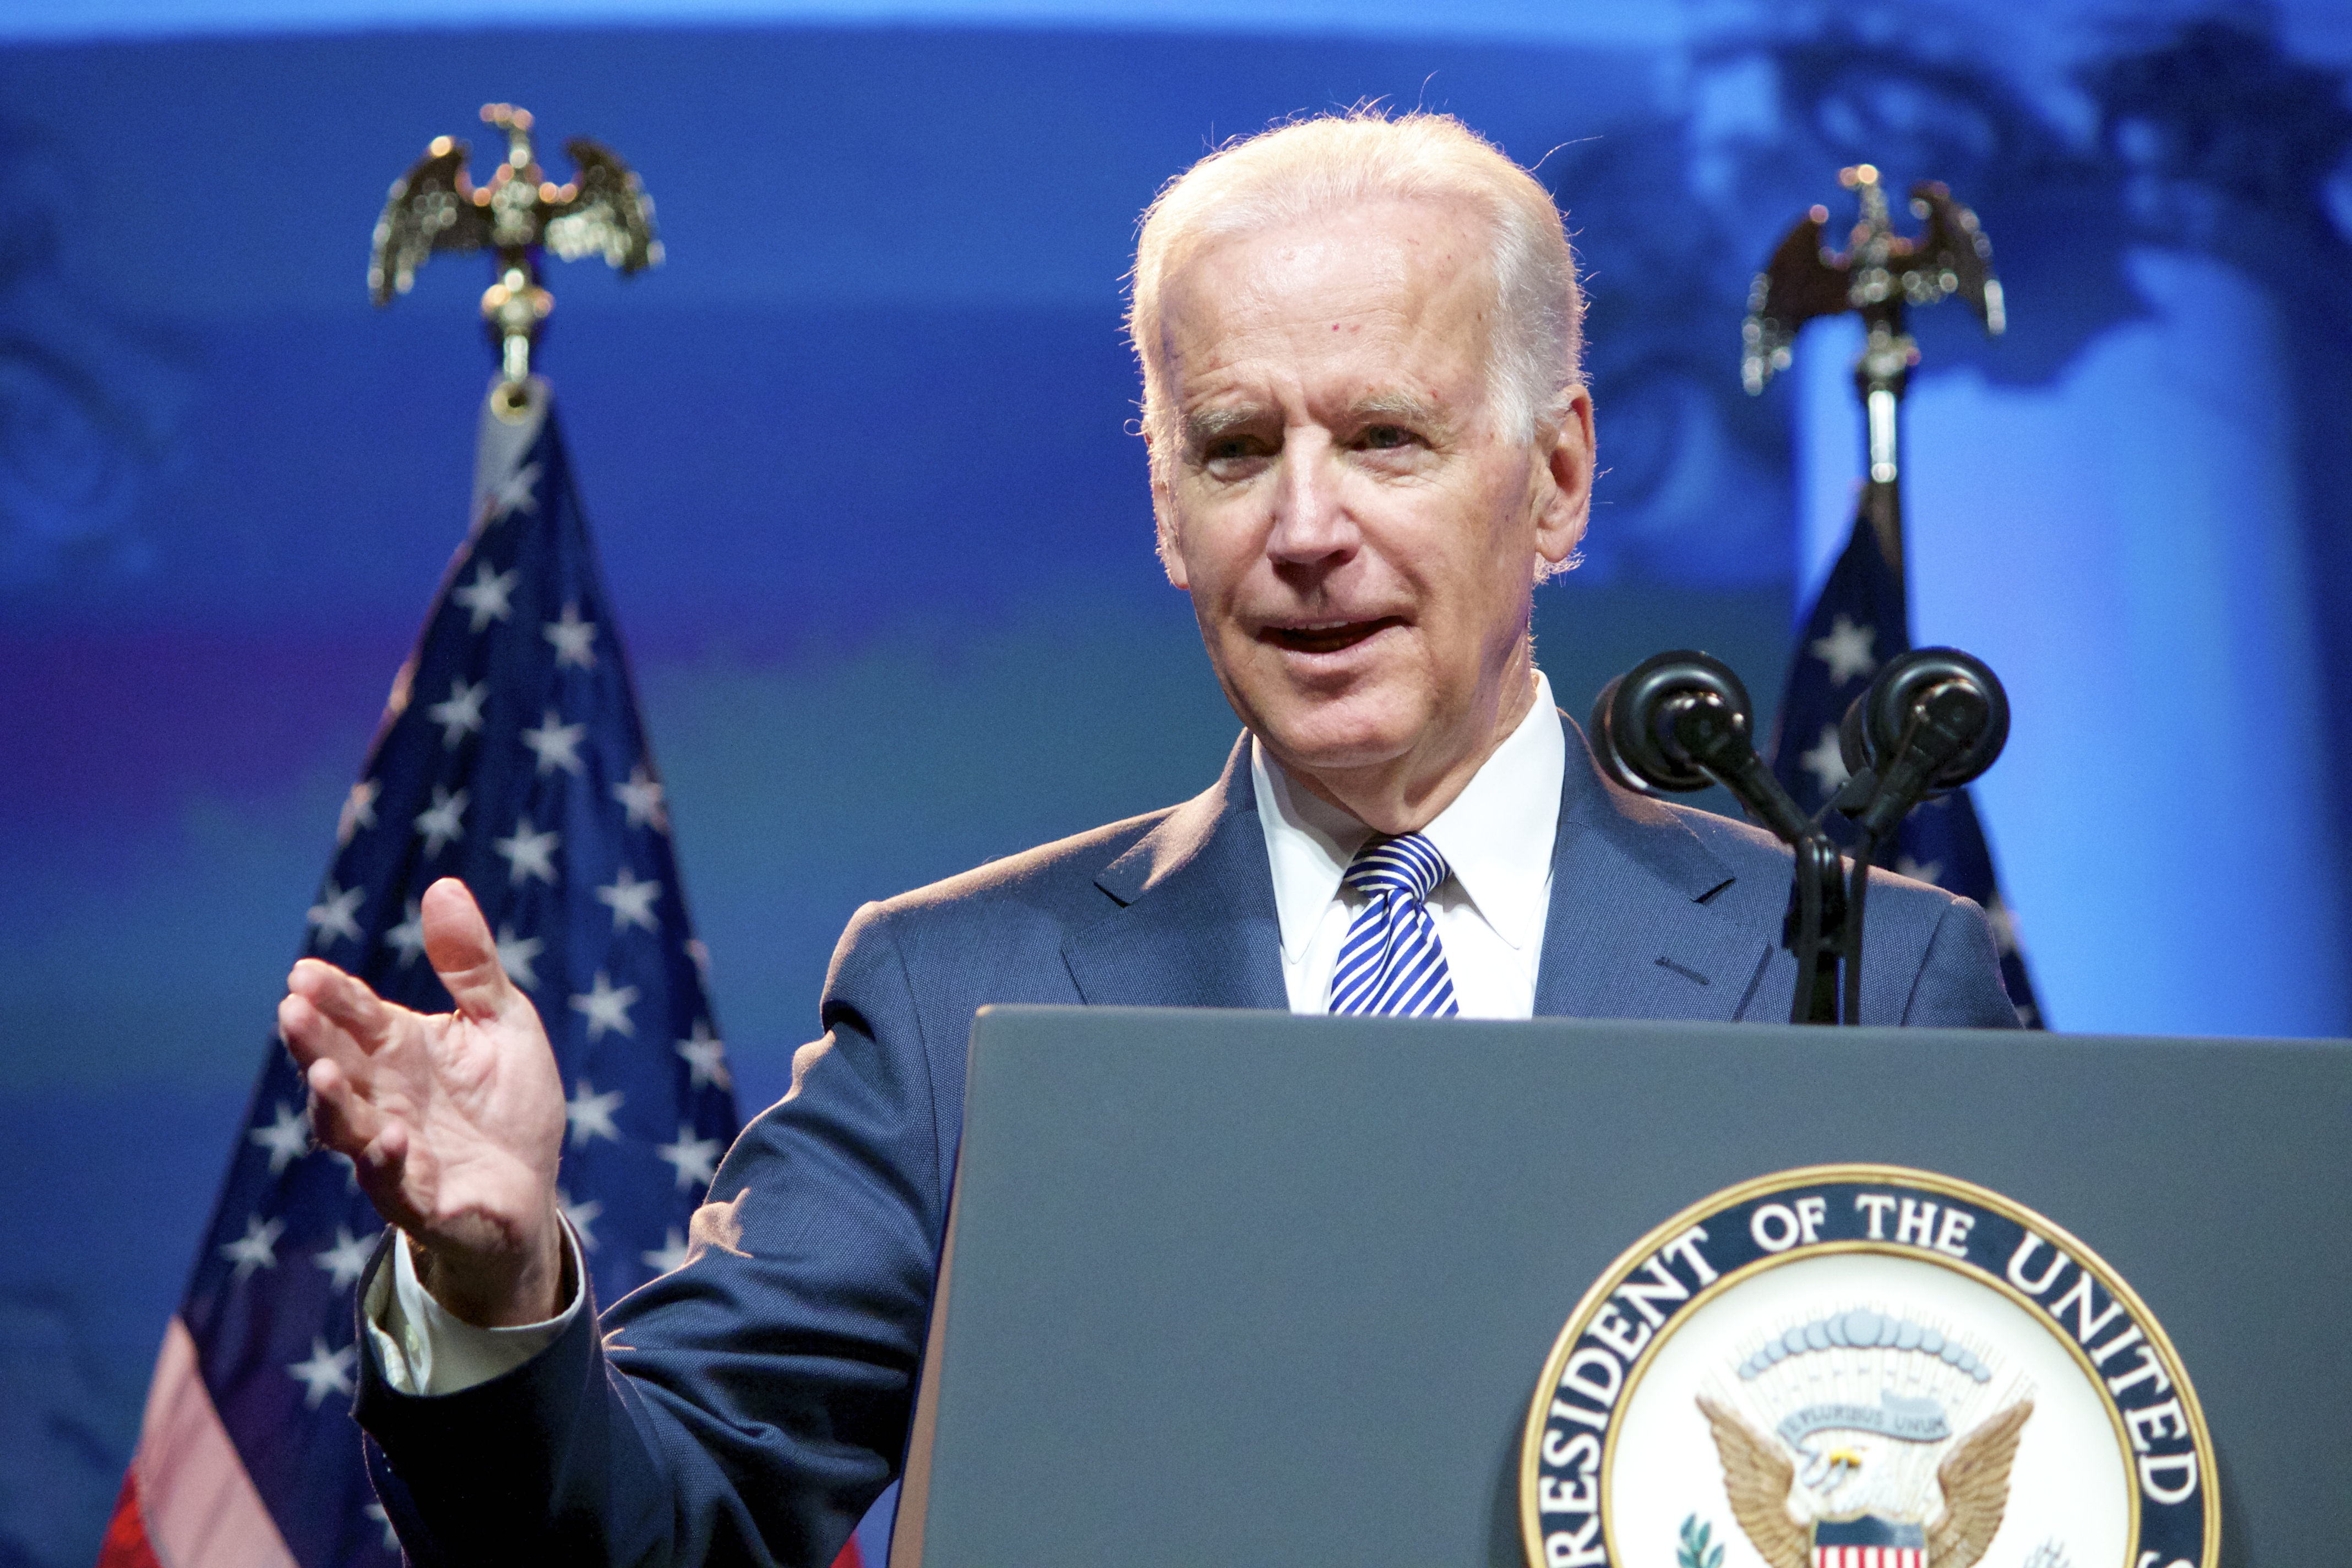 Biden's climate policy hits the sweet spot